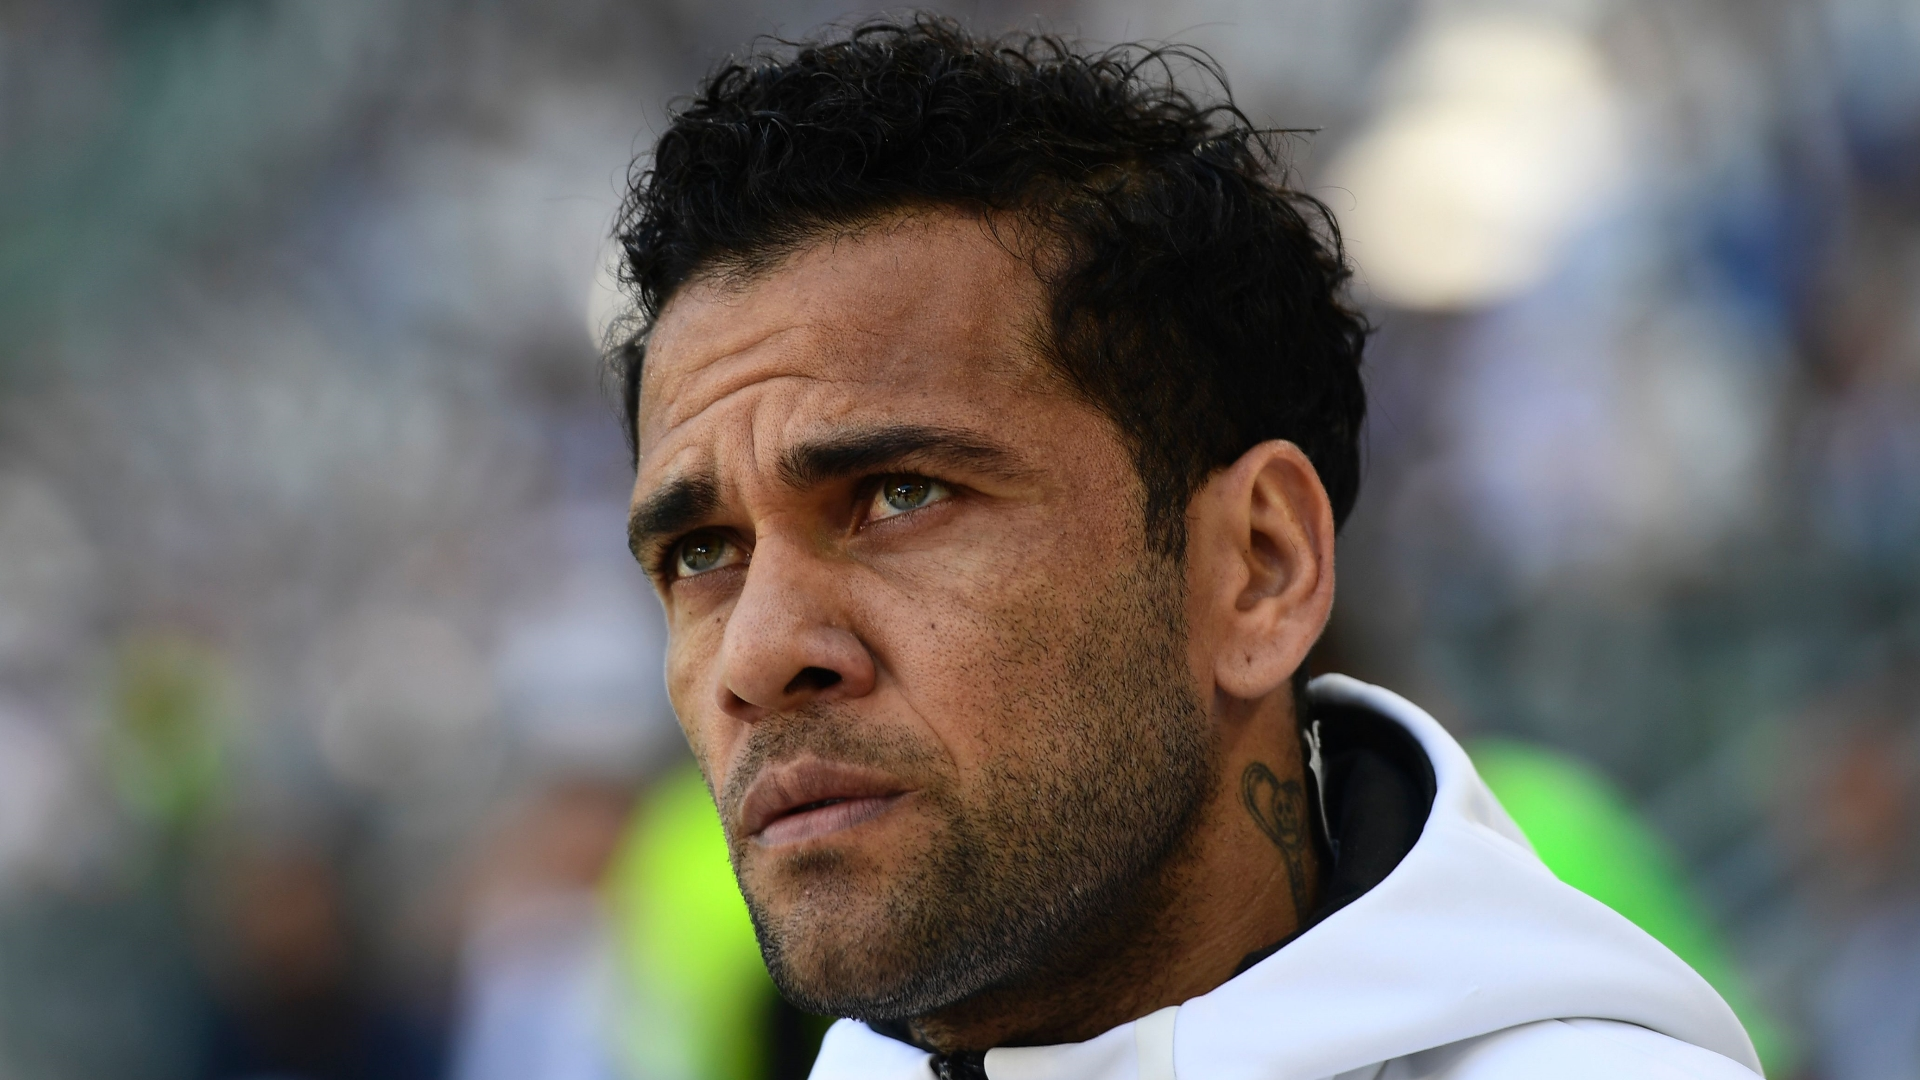 Dani Alves attacca Maradona